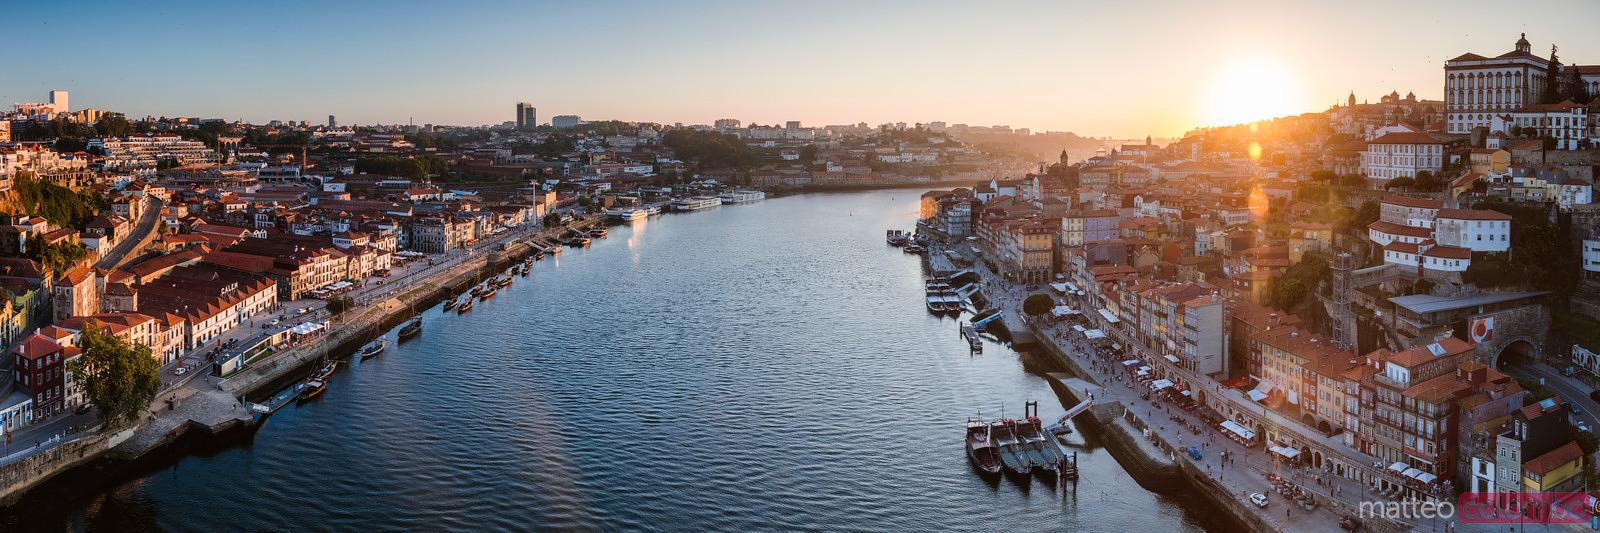 Panoramic of Douro river and city of Porto, Portugal